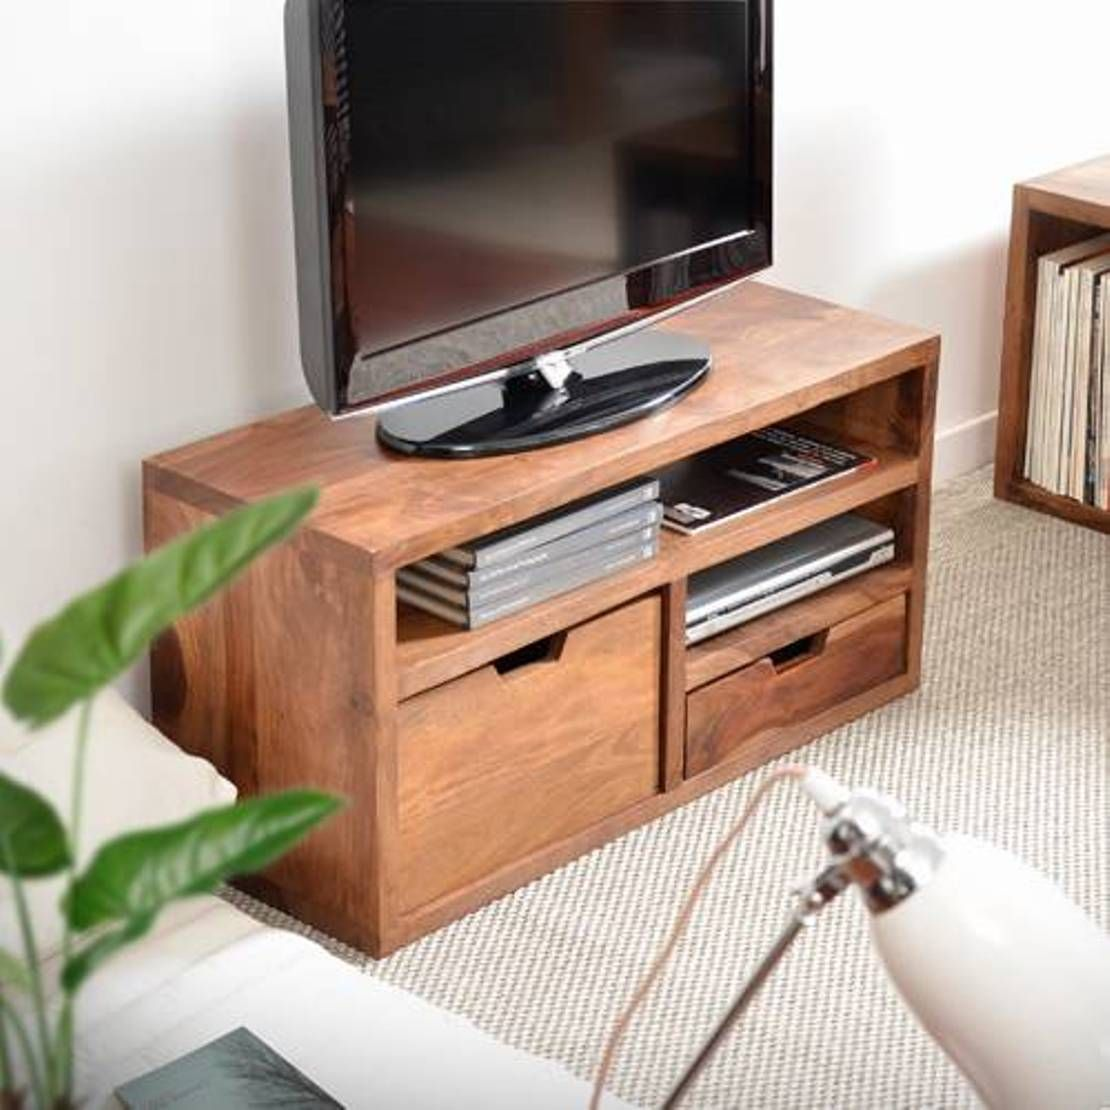 Small Tv Stands With Storage Space Saving Small Tv Stands Small Tv Stand Tv Stand With Storage Tv Storage